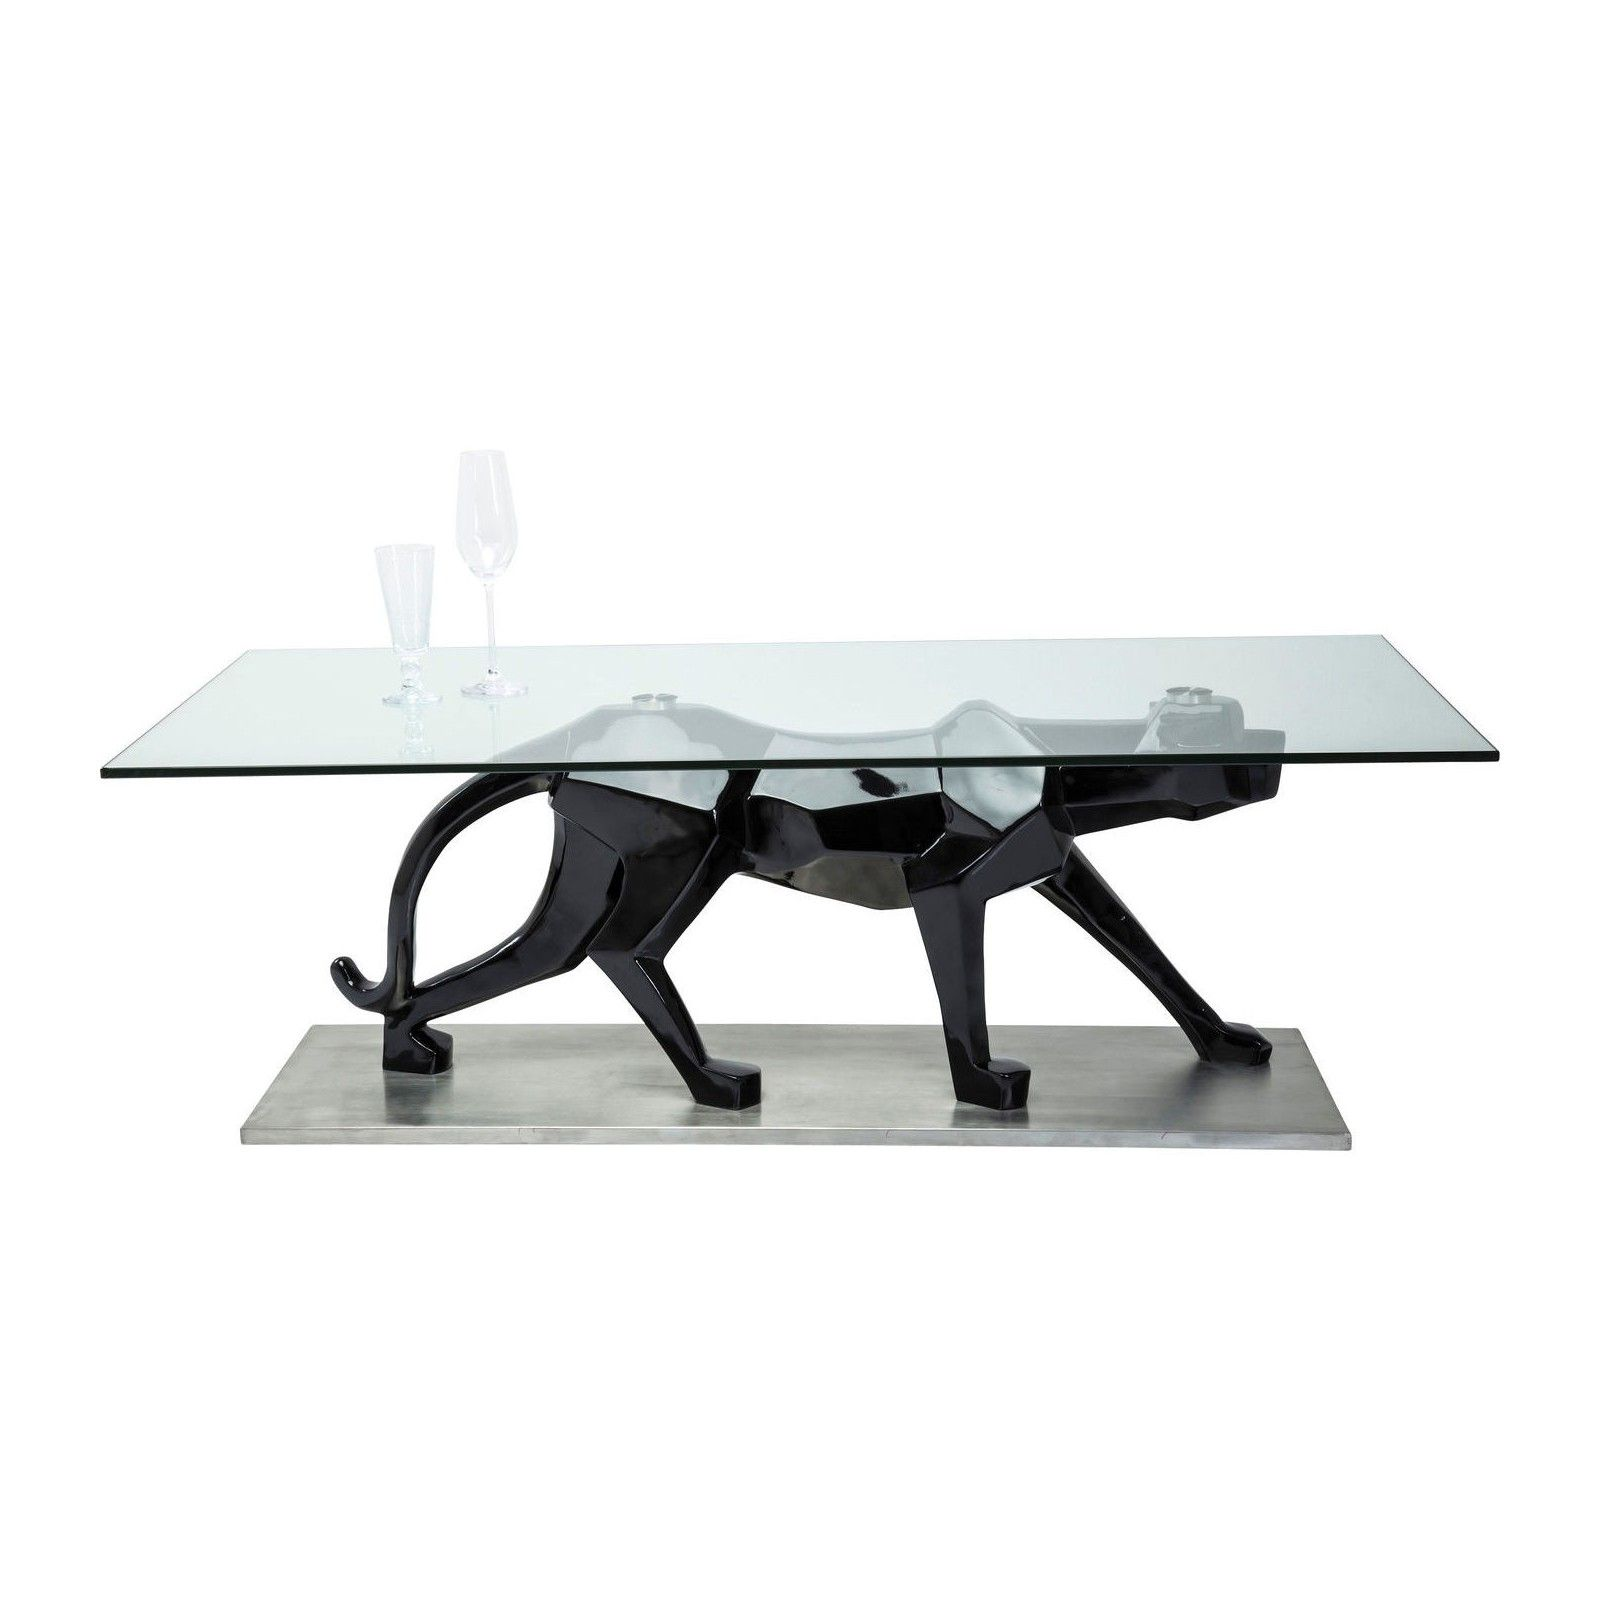 ee826217fc8deac4dd1f8d838c0eb592 Meilleur De De Table Basse Italienne Design